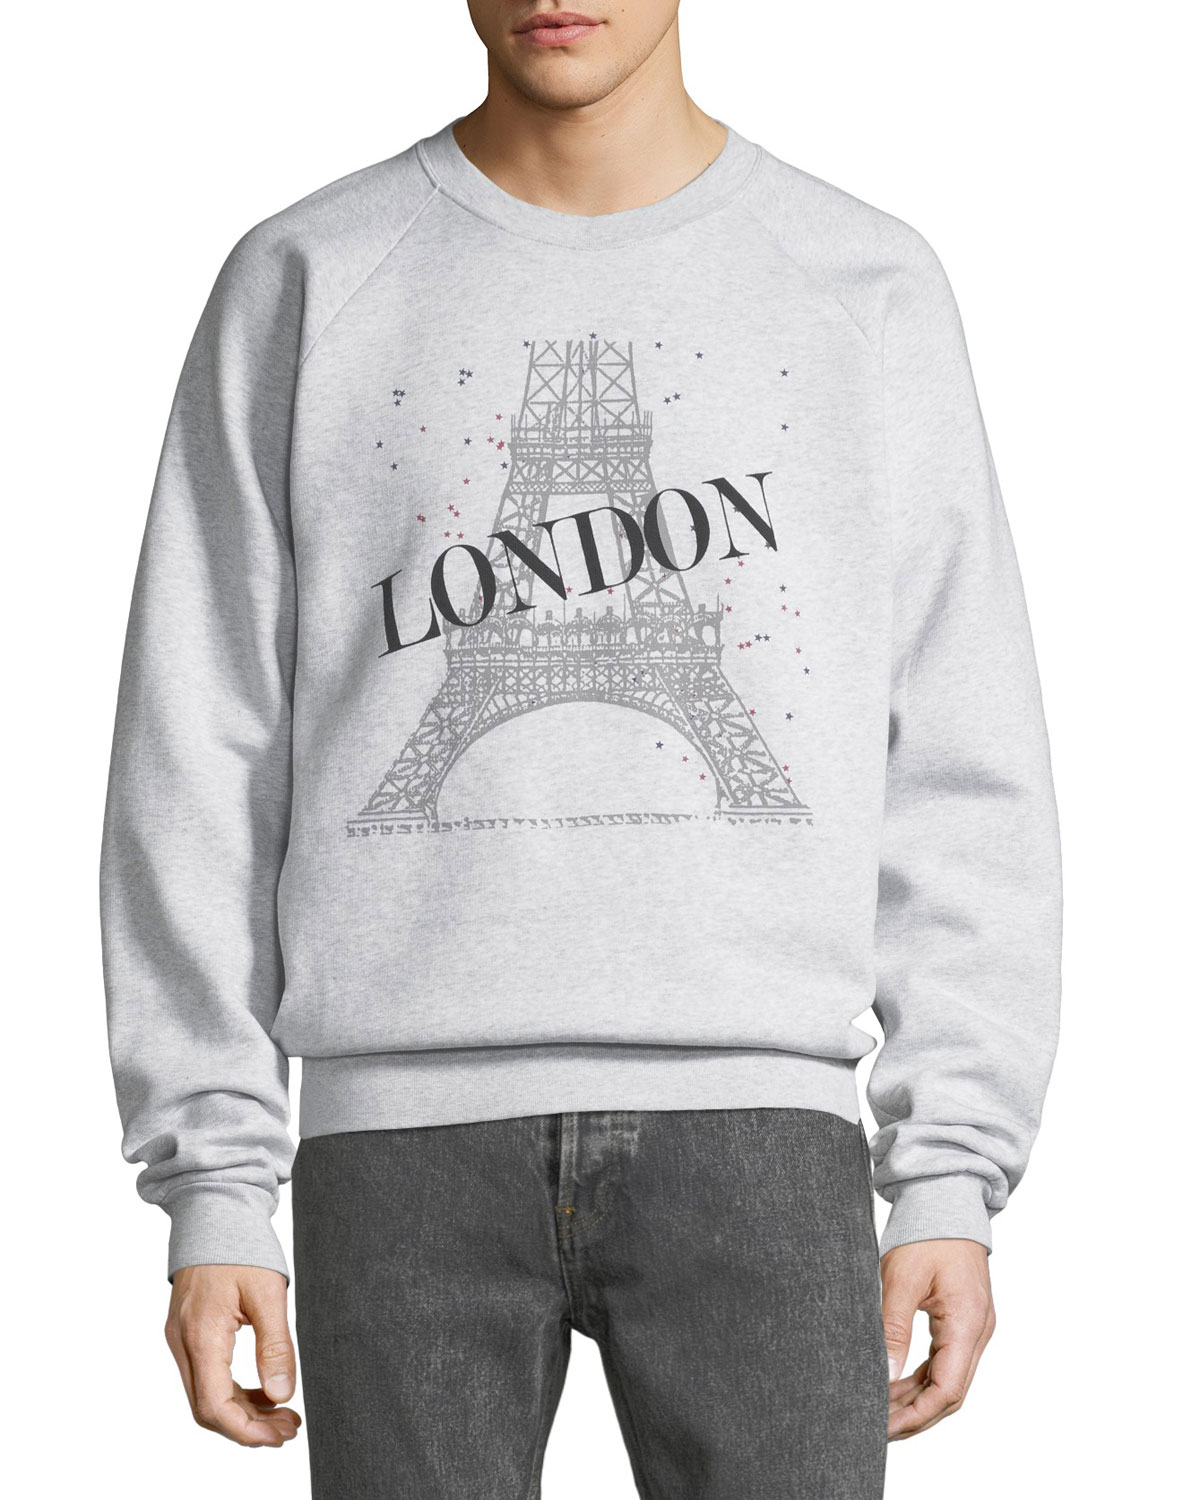 Eiffel Tower Graphic Sweatshirt